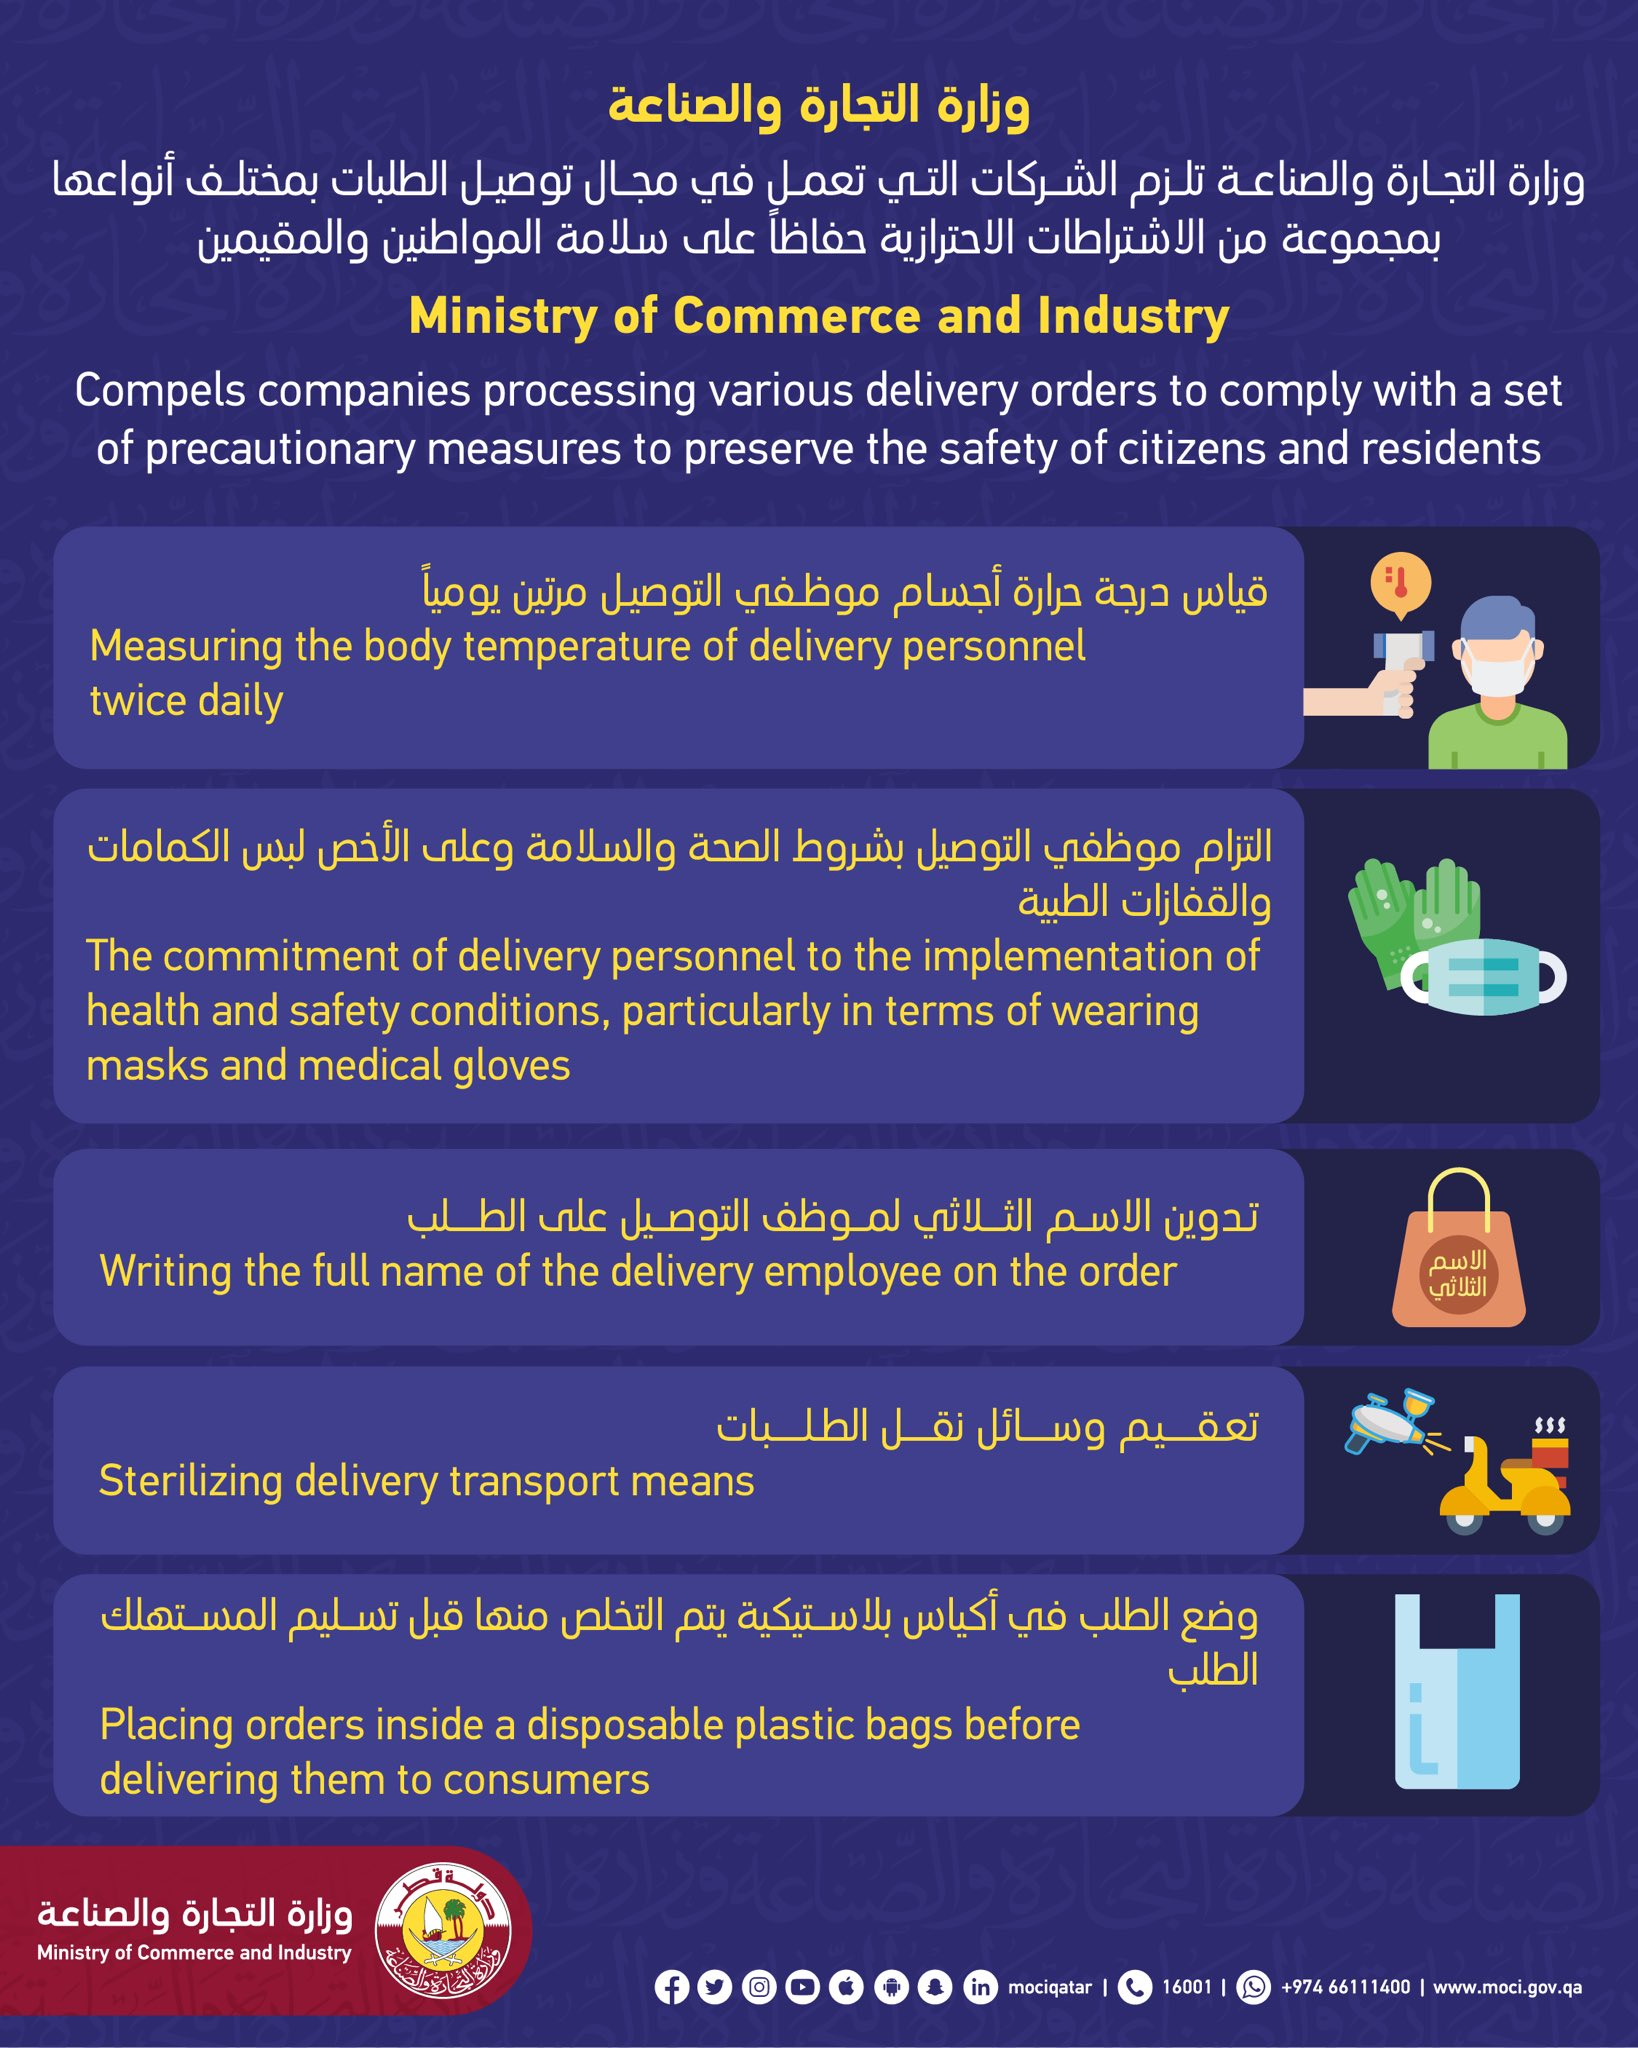 Ministry obligates delivery companies to follow strict precautionary measures